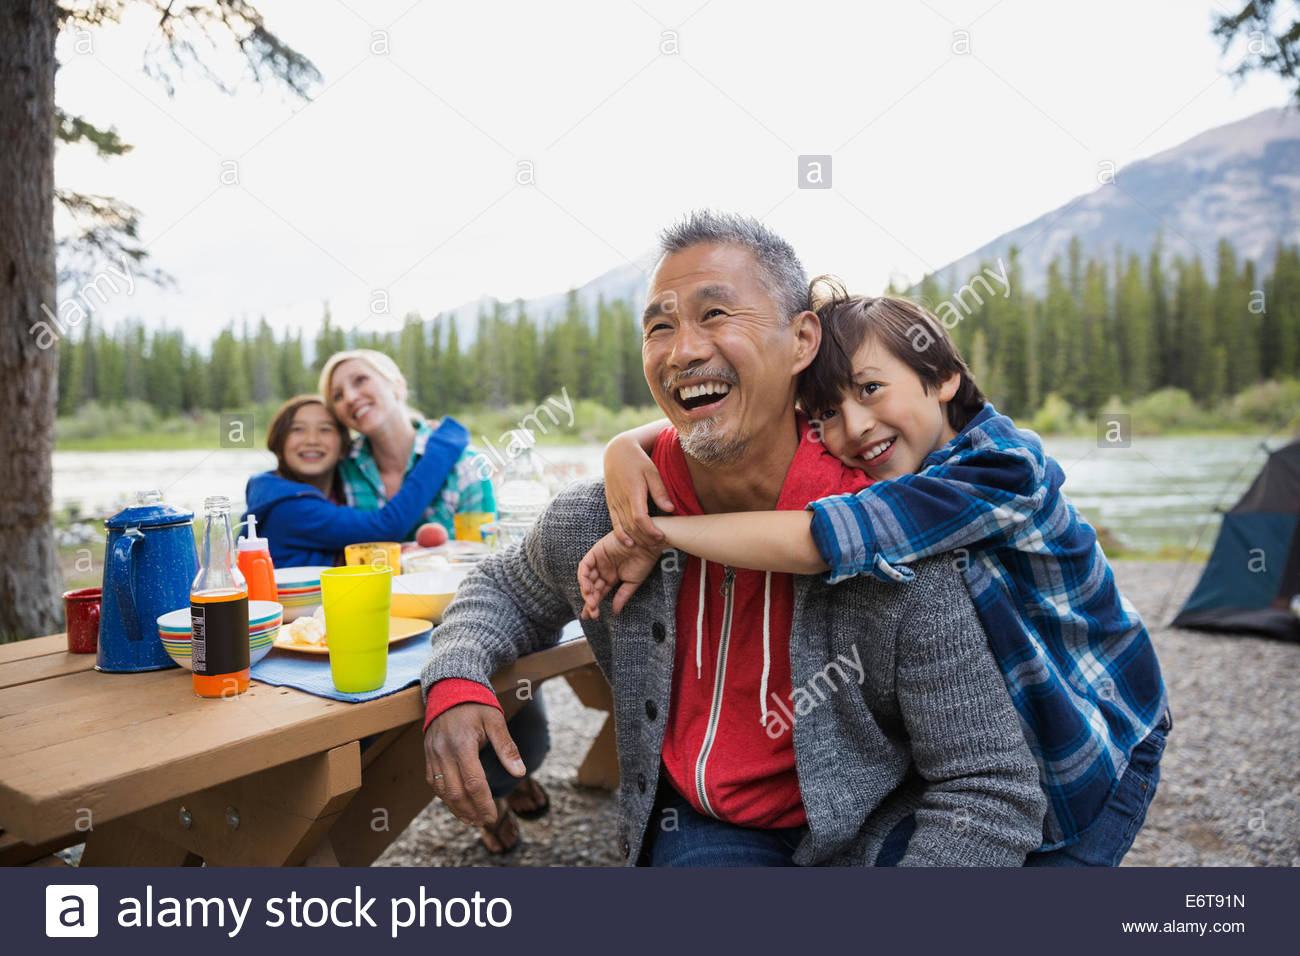 Family relaxing together at campsiteBanque D'Images